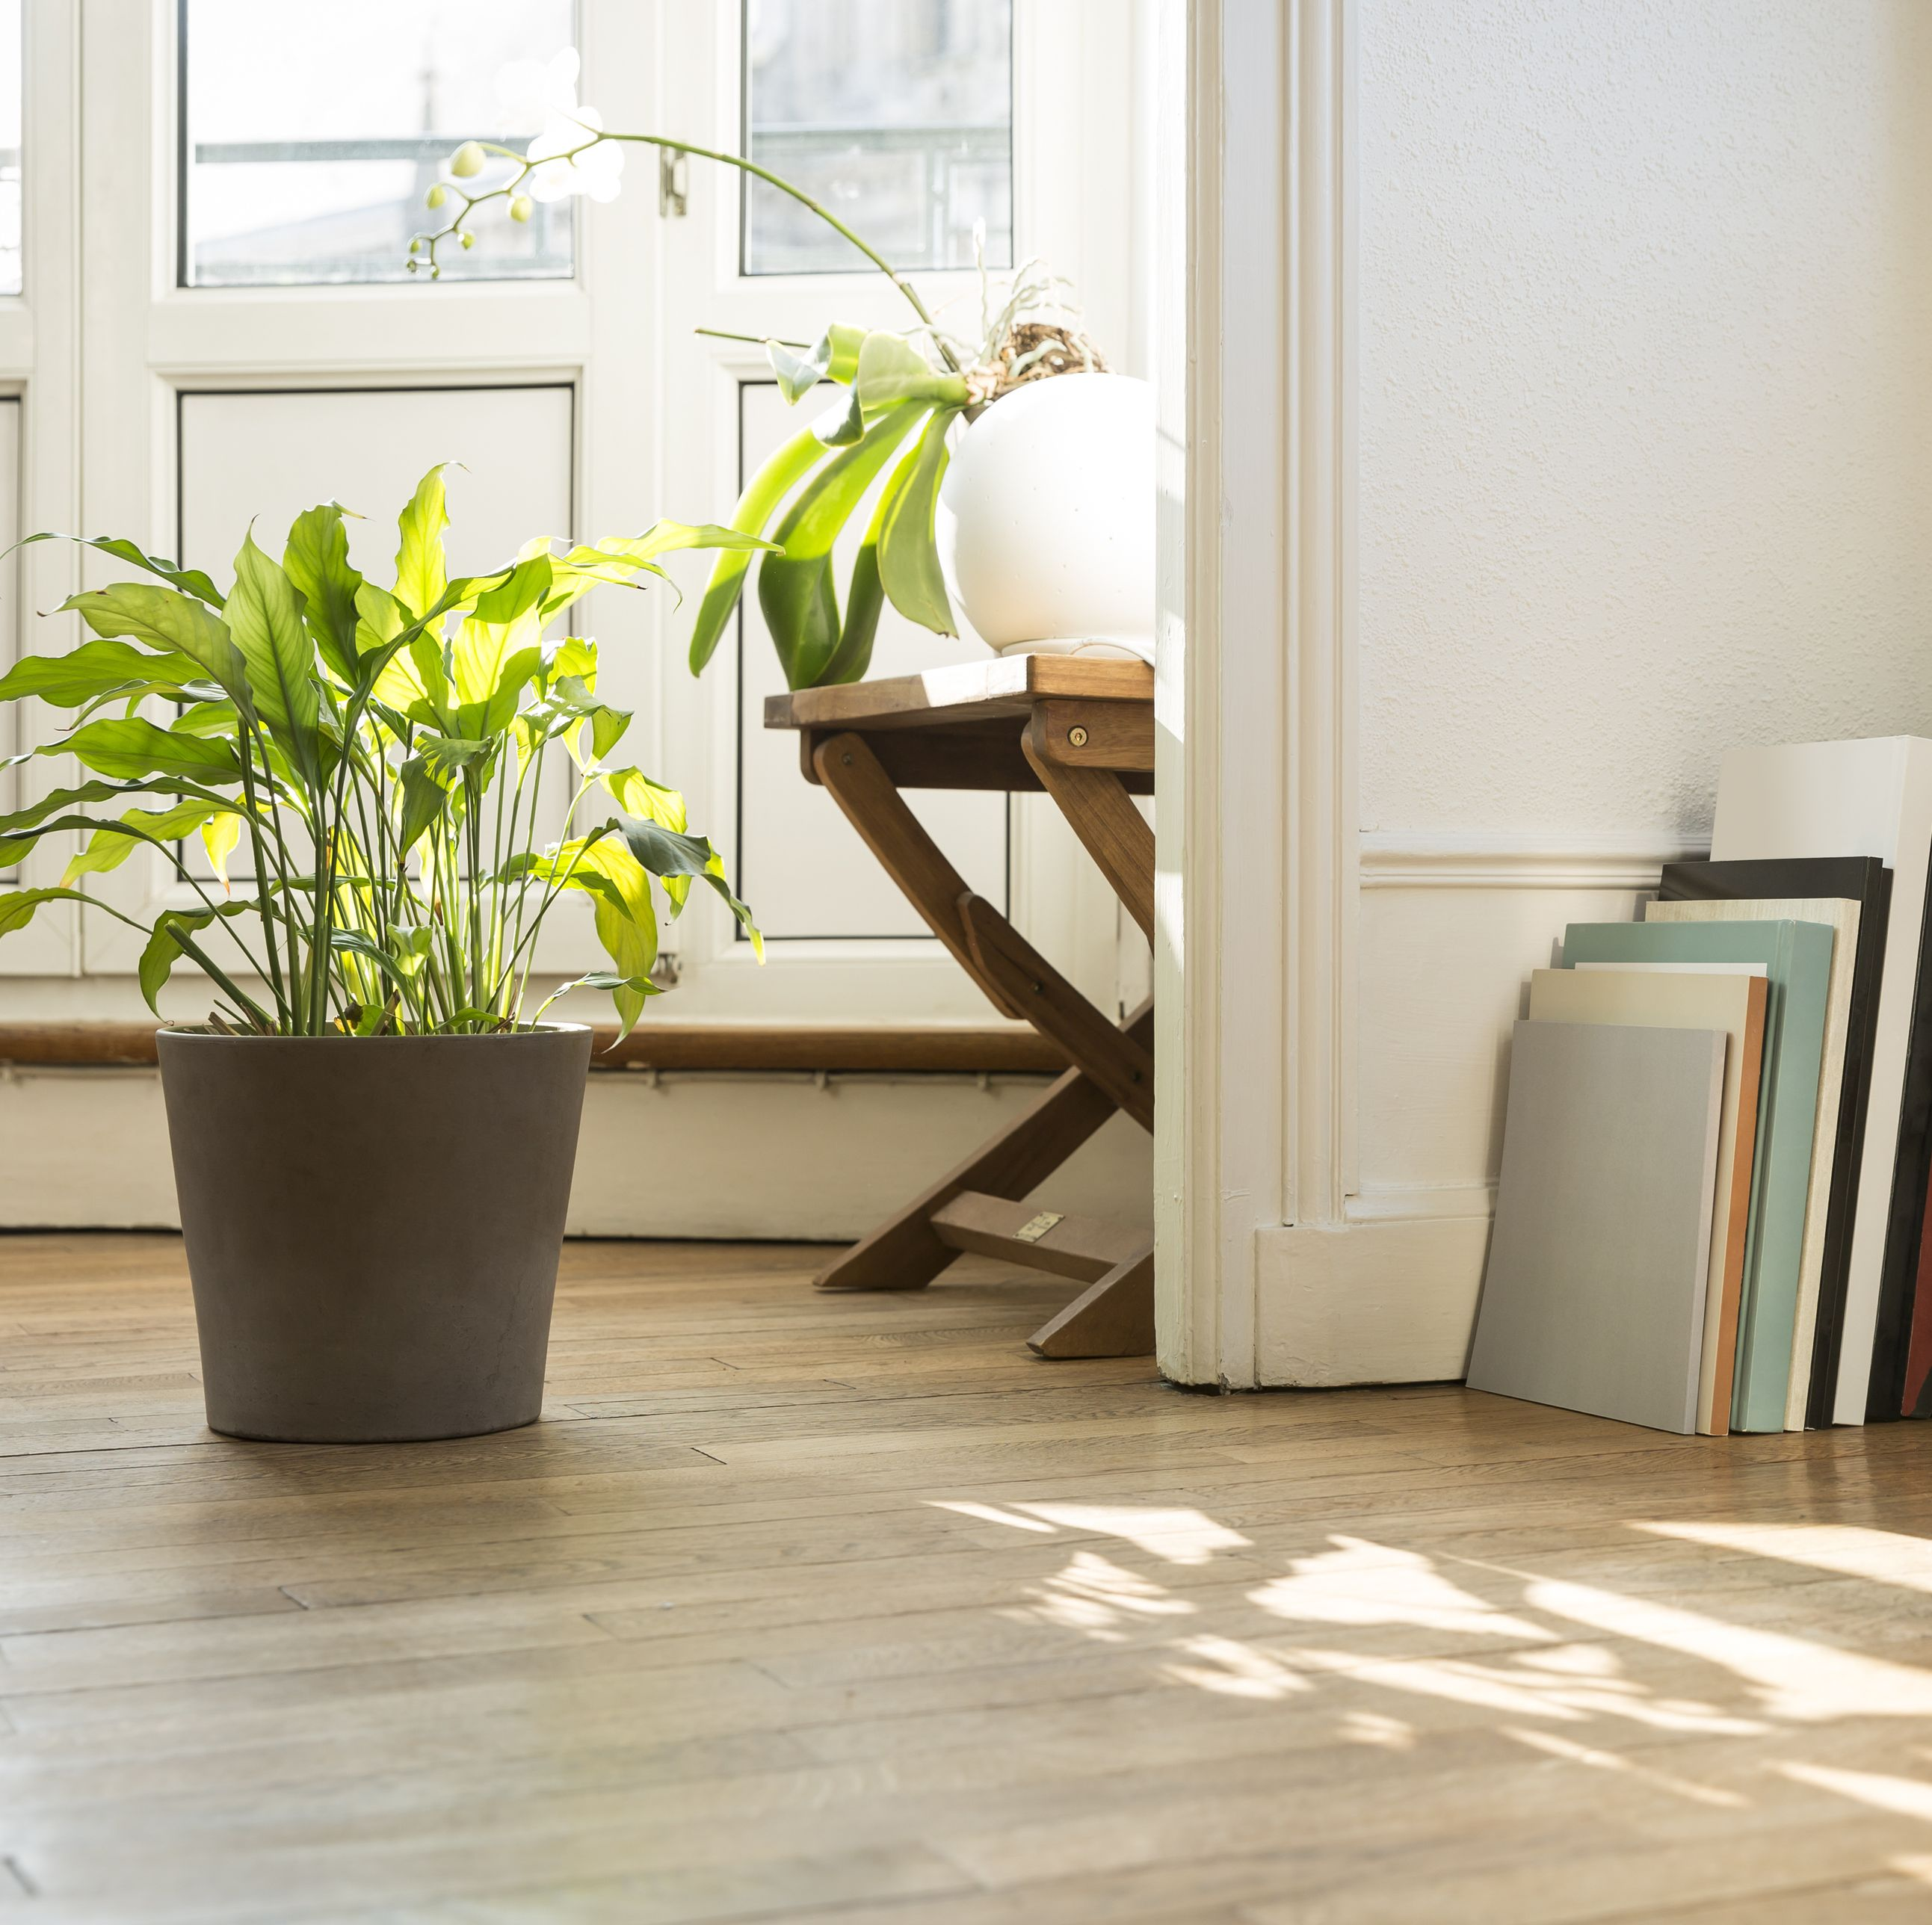 Follow These Two Simple Steps To Save Your Plants (And House) From Bugs